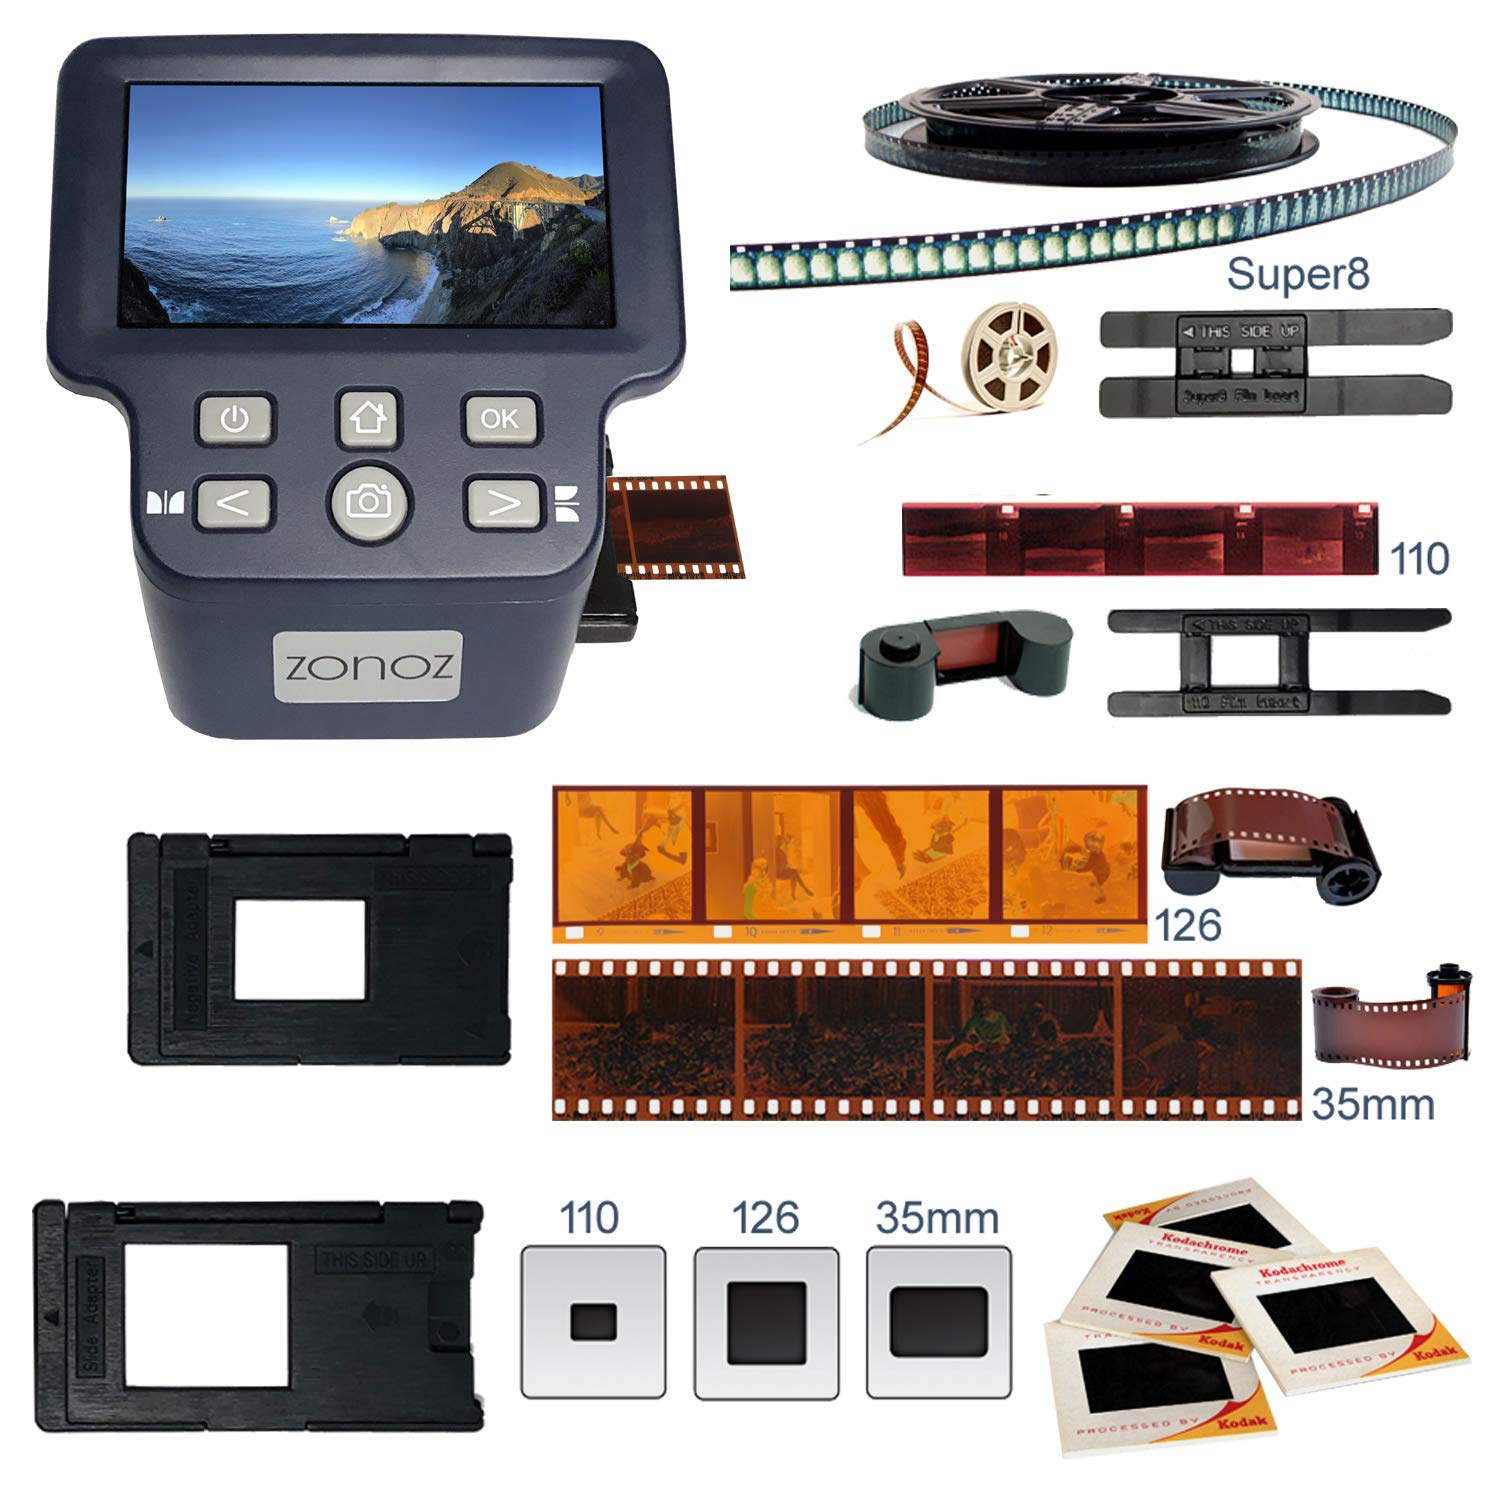 zonoz FS-Four Digital Film & Slide Scanner Converter w/HDMI Output - Converts 35mm, 126, 110, Super 8 & 8mm Film Negatives & Slides to JPEG - Large 5'' LCD, Easy-Load Adapters (Worldwide 110V-220V) by zonoz (Image #3)